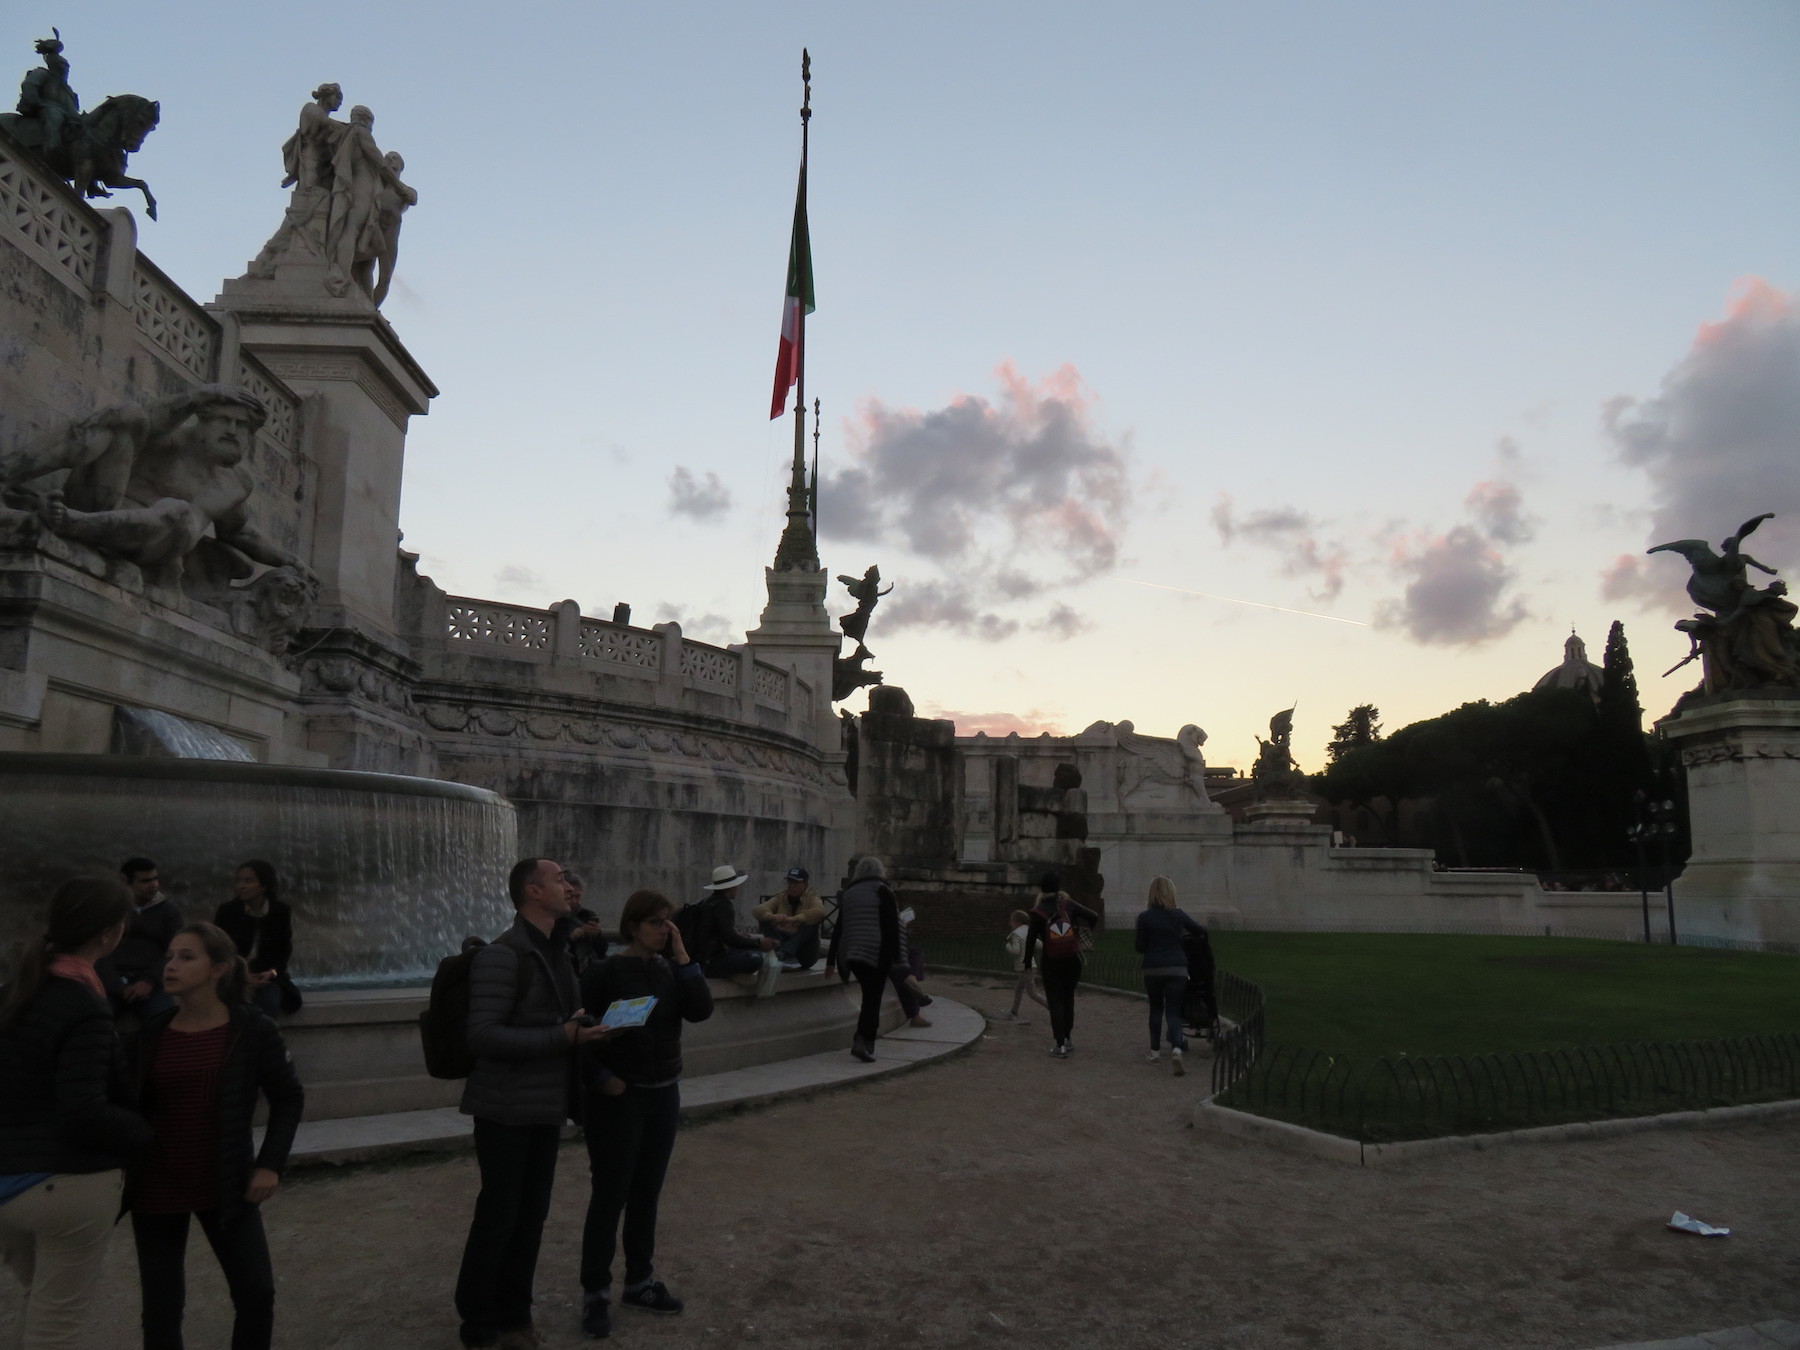 Photo in Rome, Italy